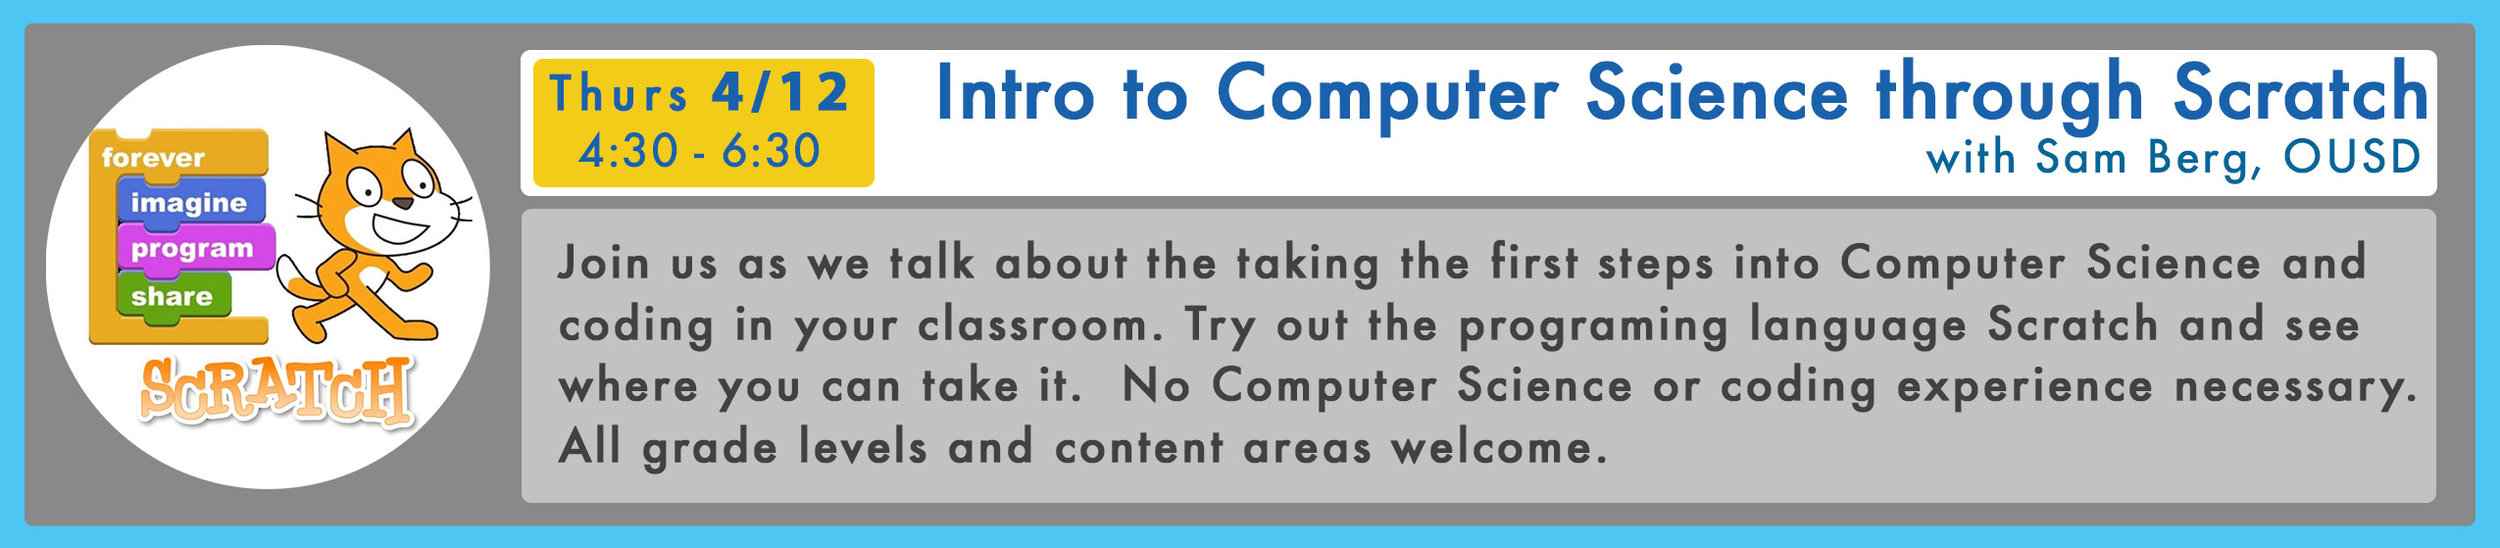 RSVP here  for Intro to Computer Science Through Scratch